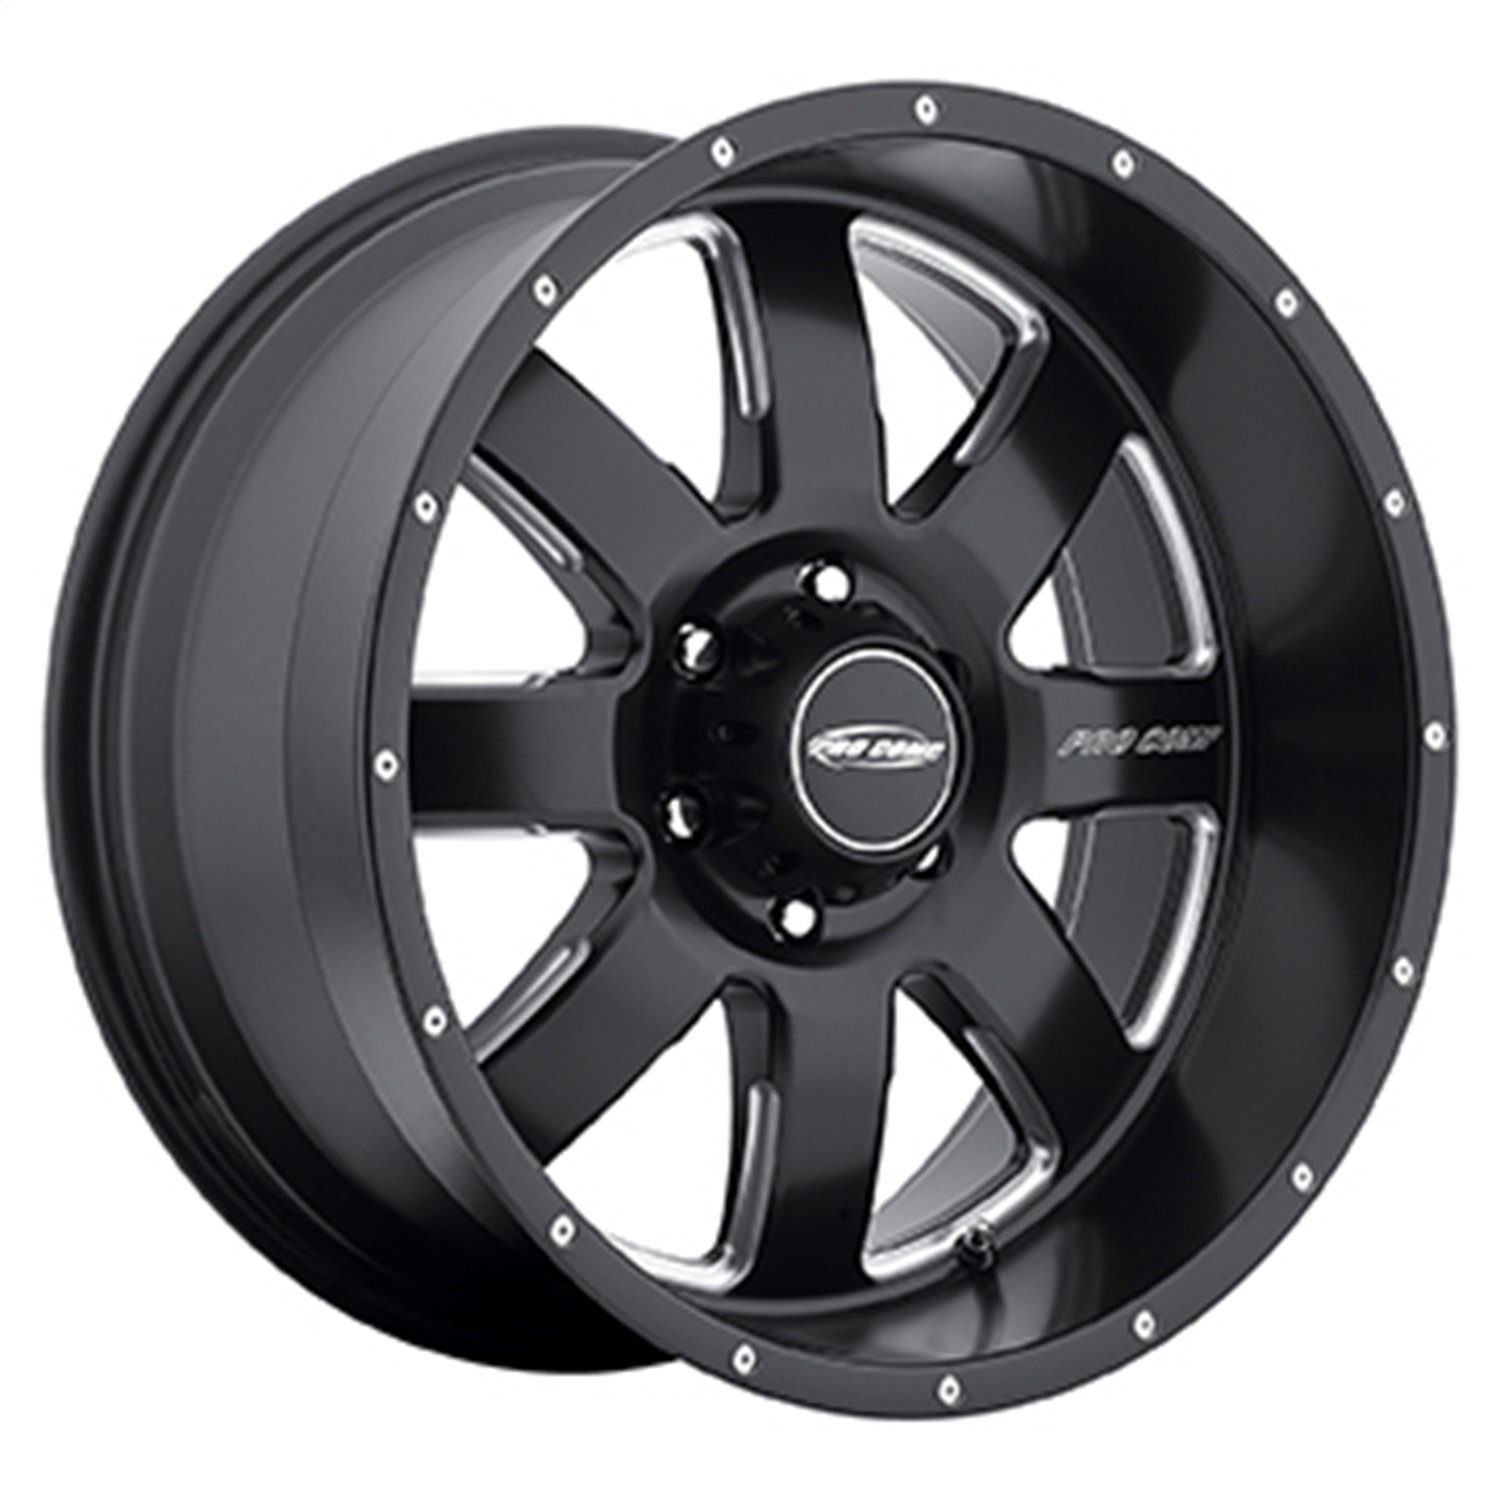 20x9.5//6x135mm Pro Comp Alloys Series 83 Vapor Matte Black Wheel with Milled Accents